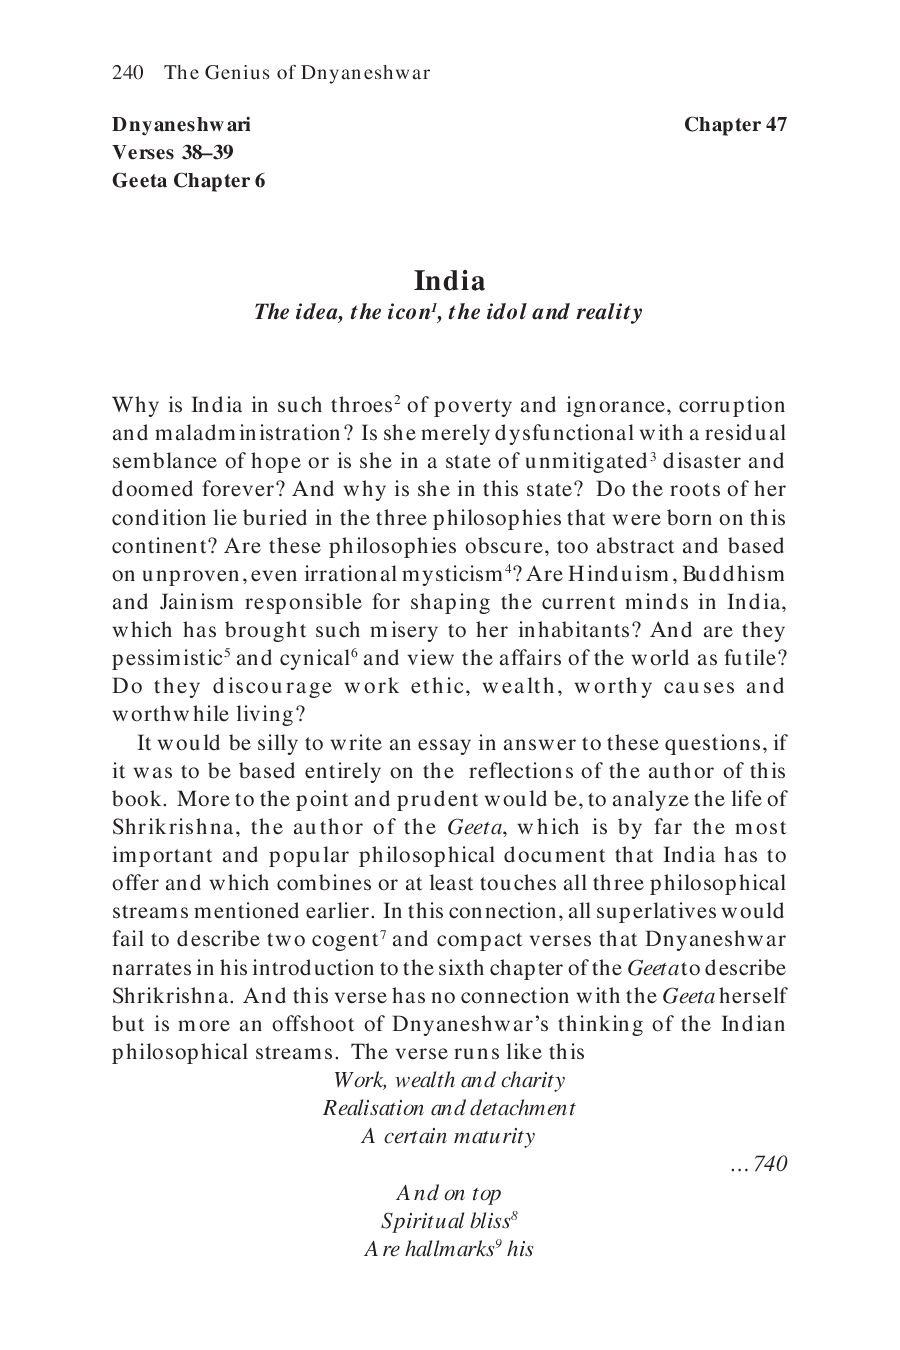 essay page counter essay in marathi language on my favourite bird  essay in marathi language on my favourite bird parrot essay topics essay on parrot bird in